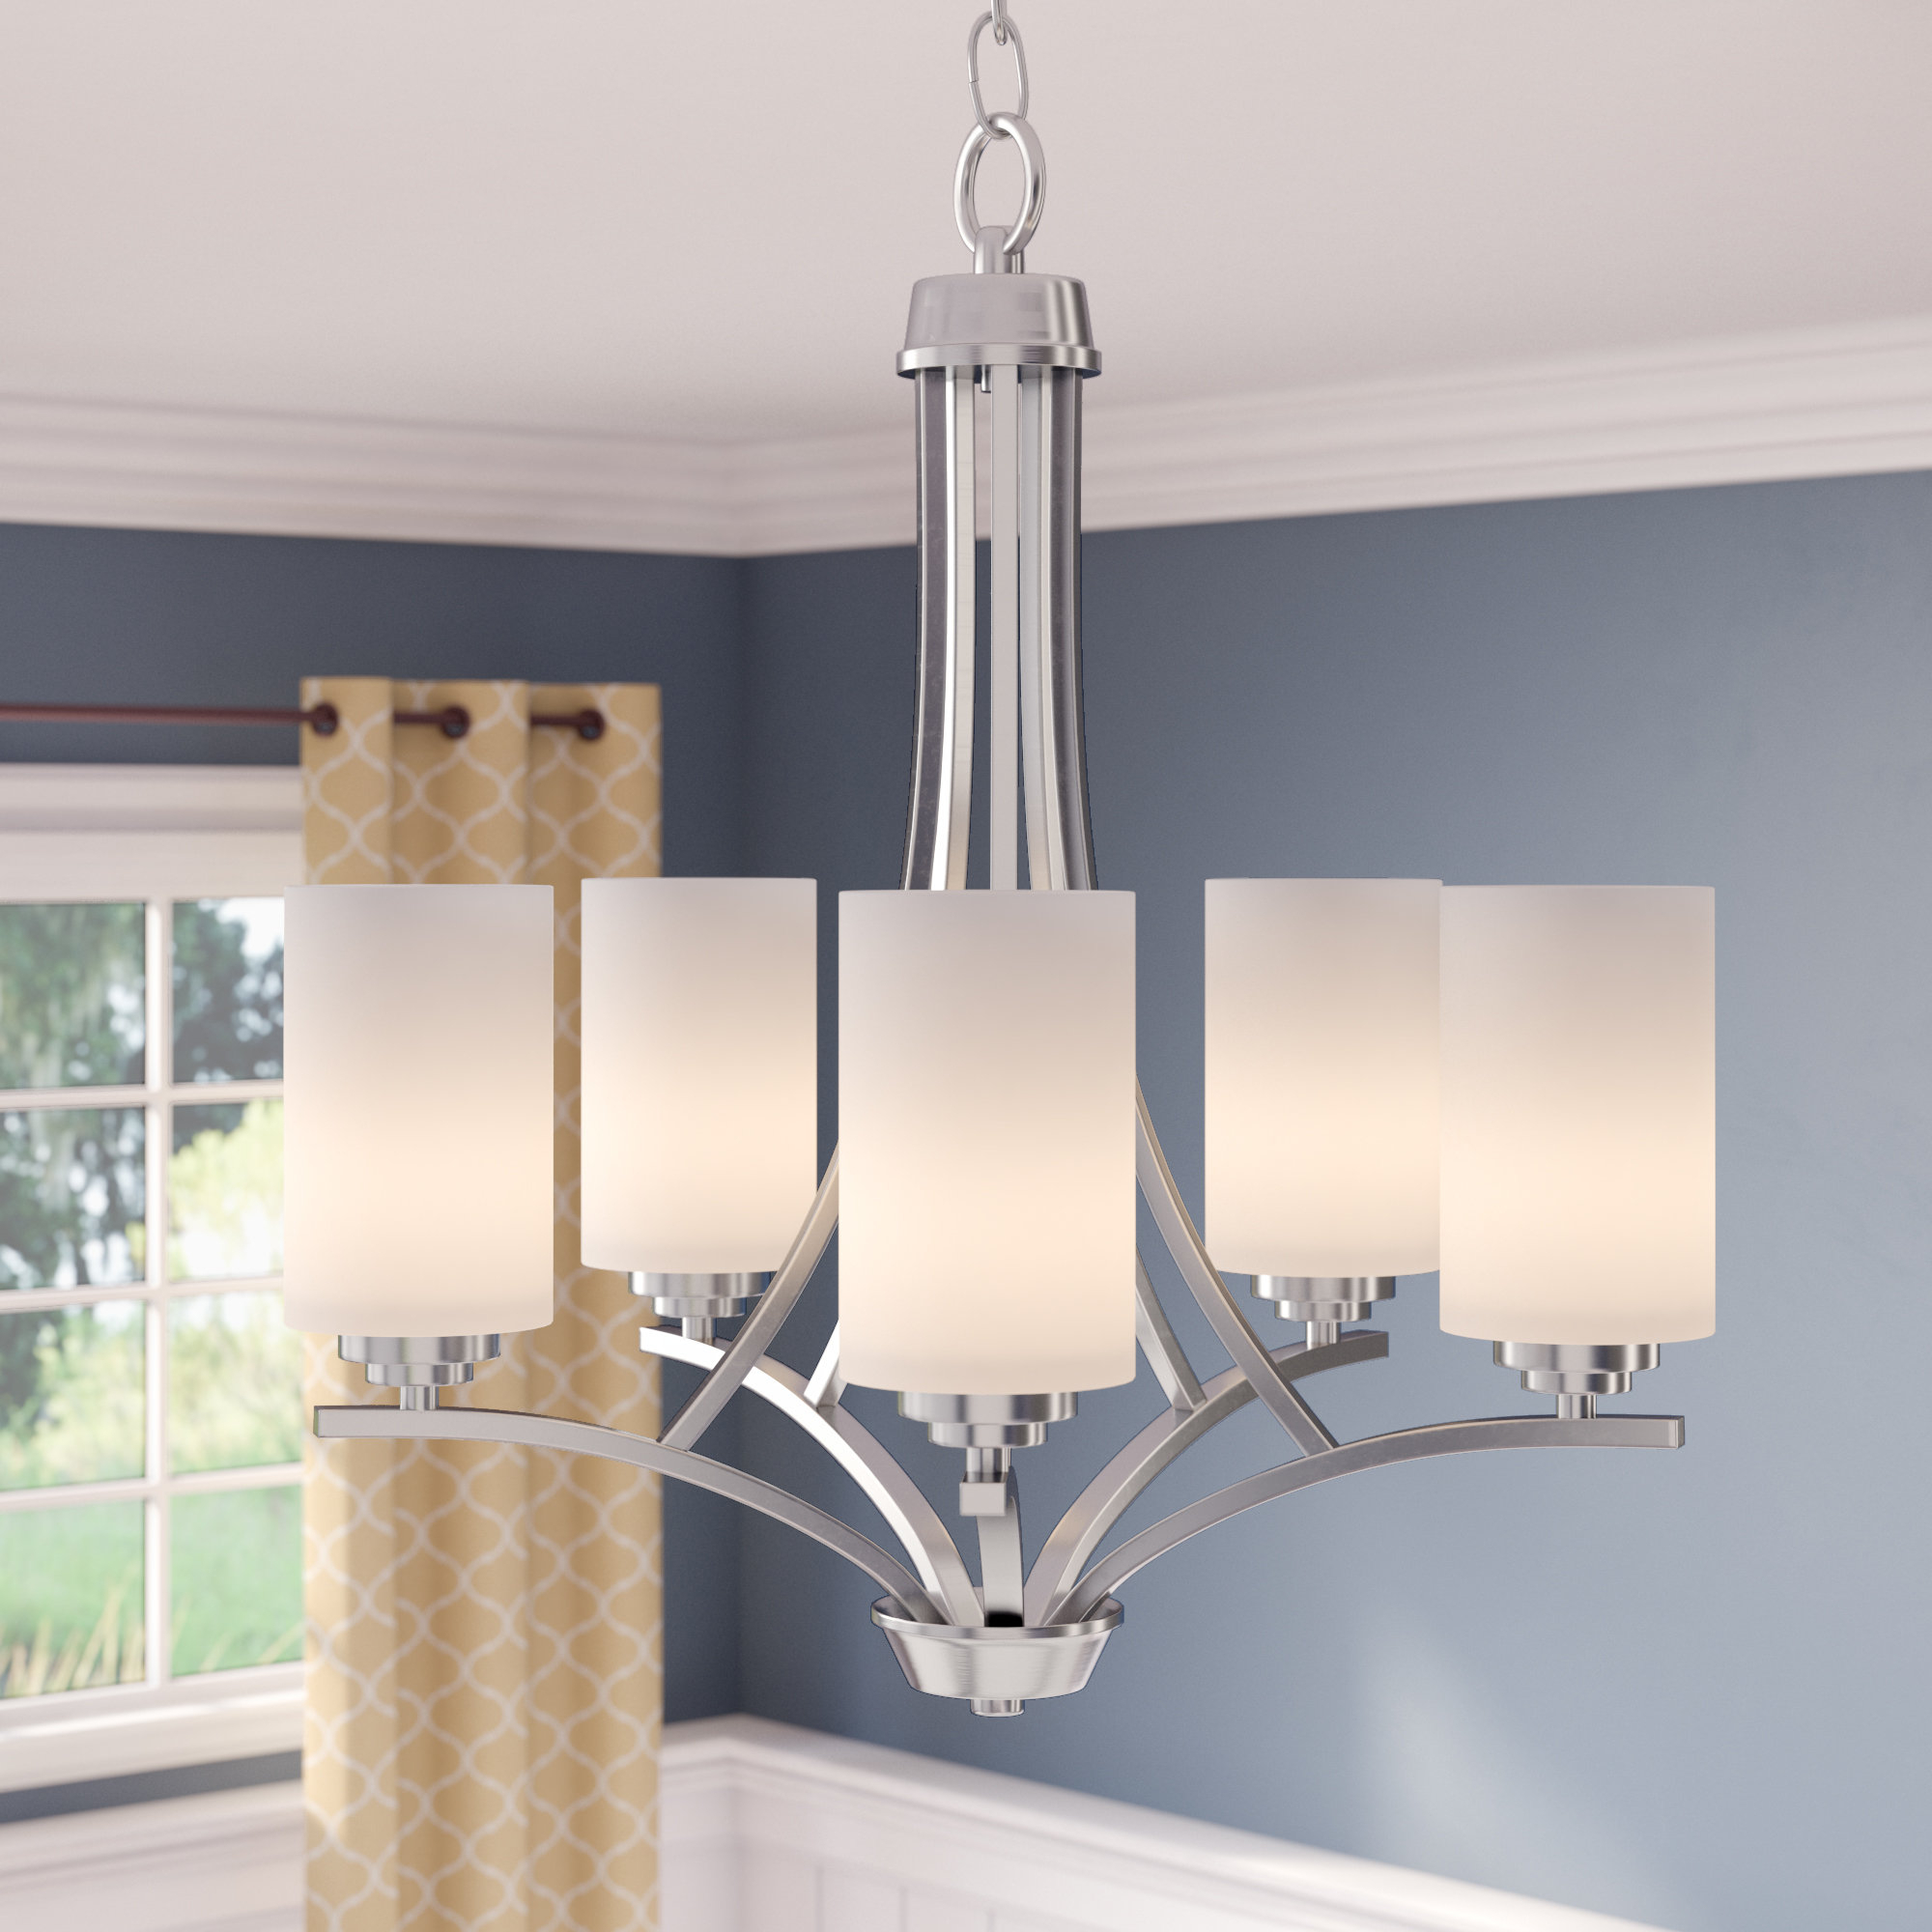 Bainsby 5-Light Shaded Chandelier in Suki 5-Light Shaded Chandeliers (Image 4 of 30)